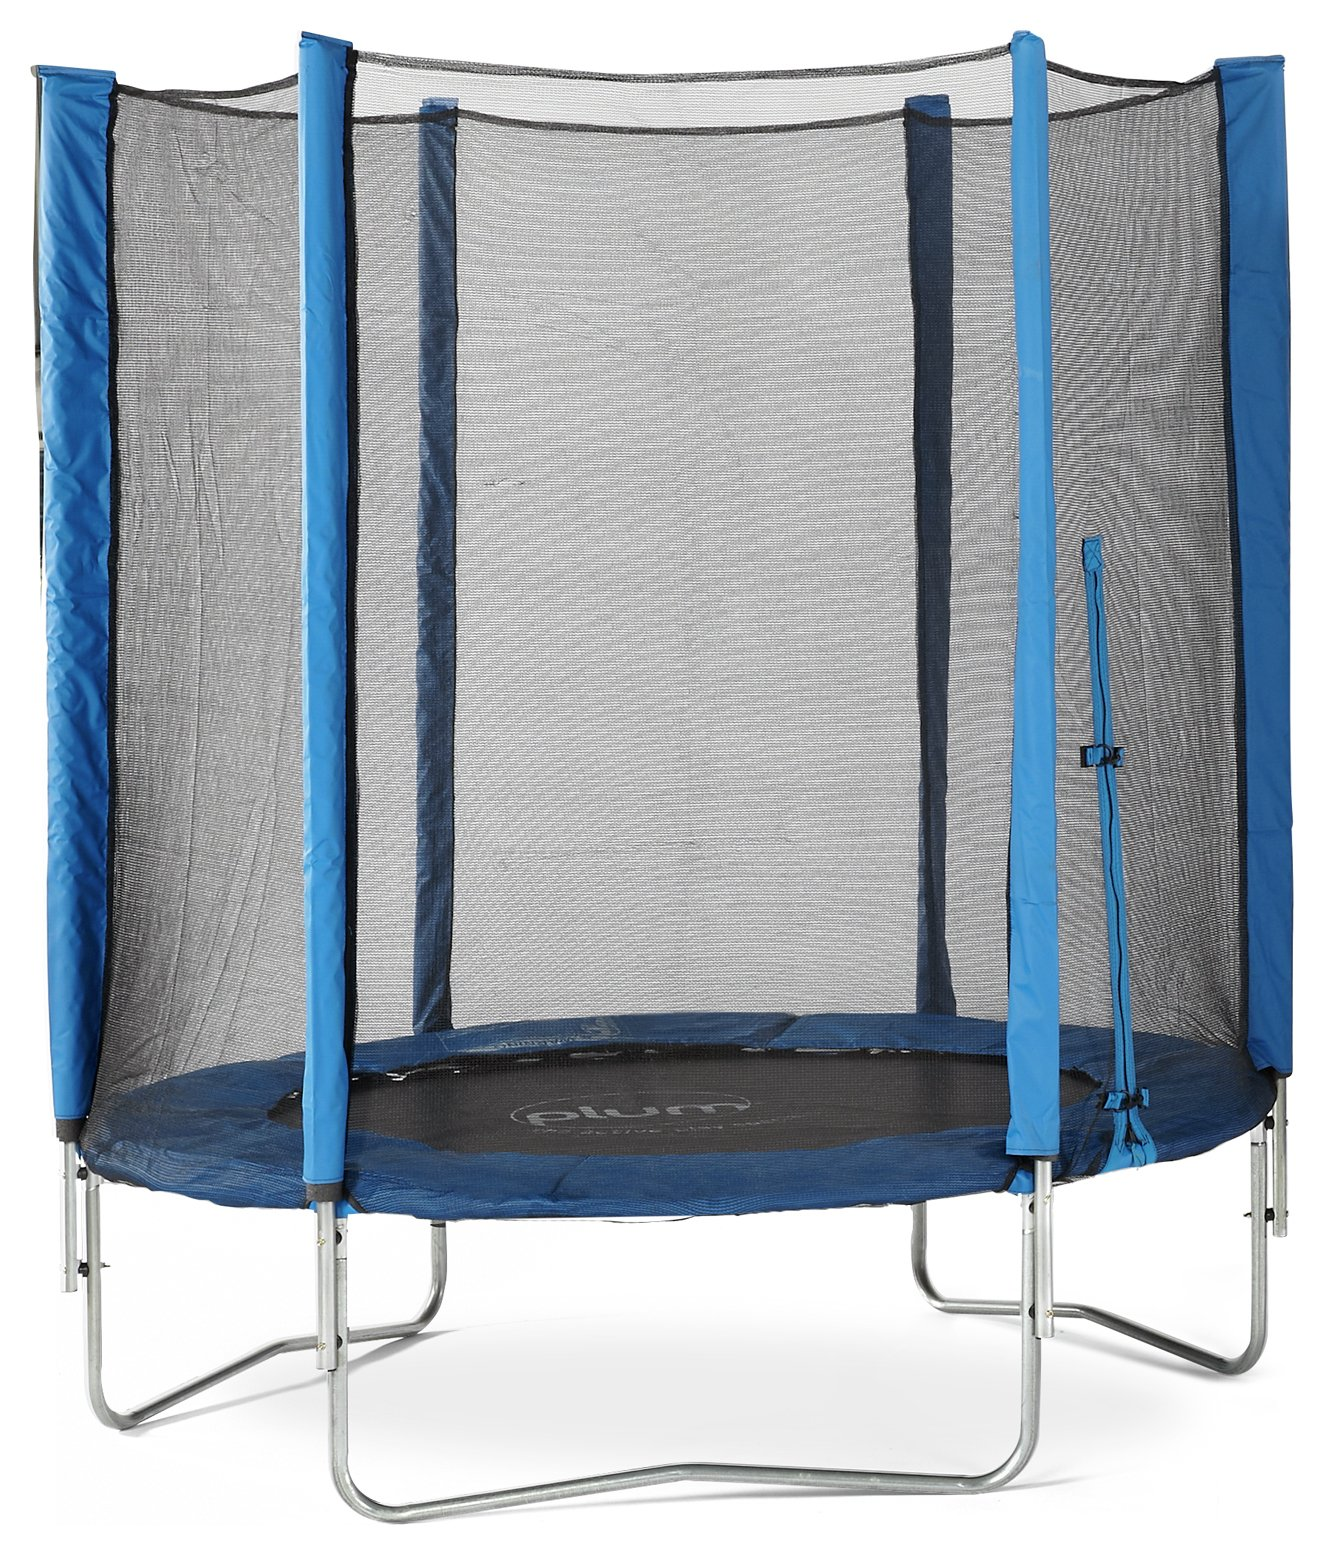 Plum 6ft Trampoline with Enclosure - Blue